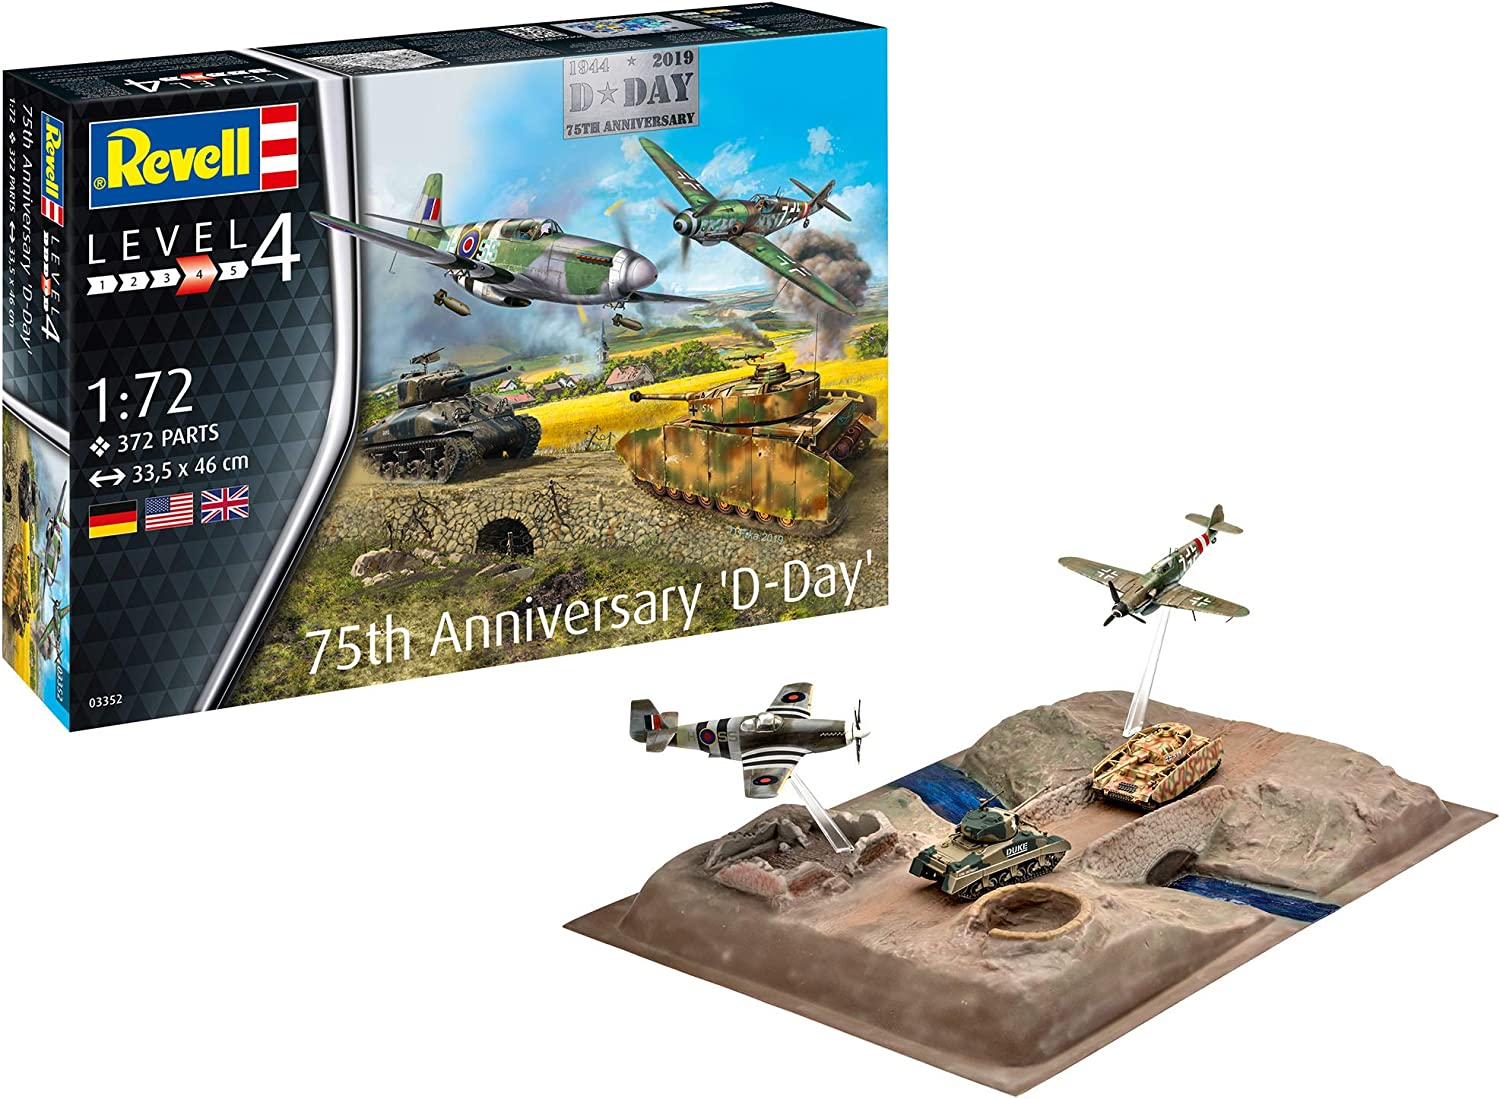 Revell RV03352 Special price 03352 1:72 D-Day Plastic Max 68% OFF Set kit 75th Model